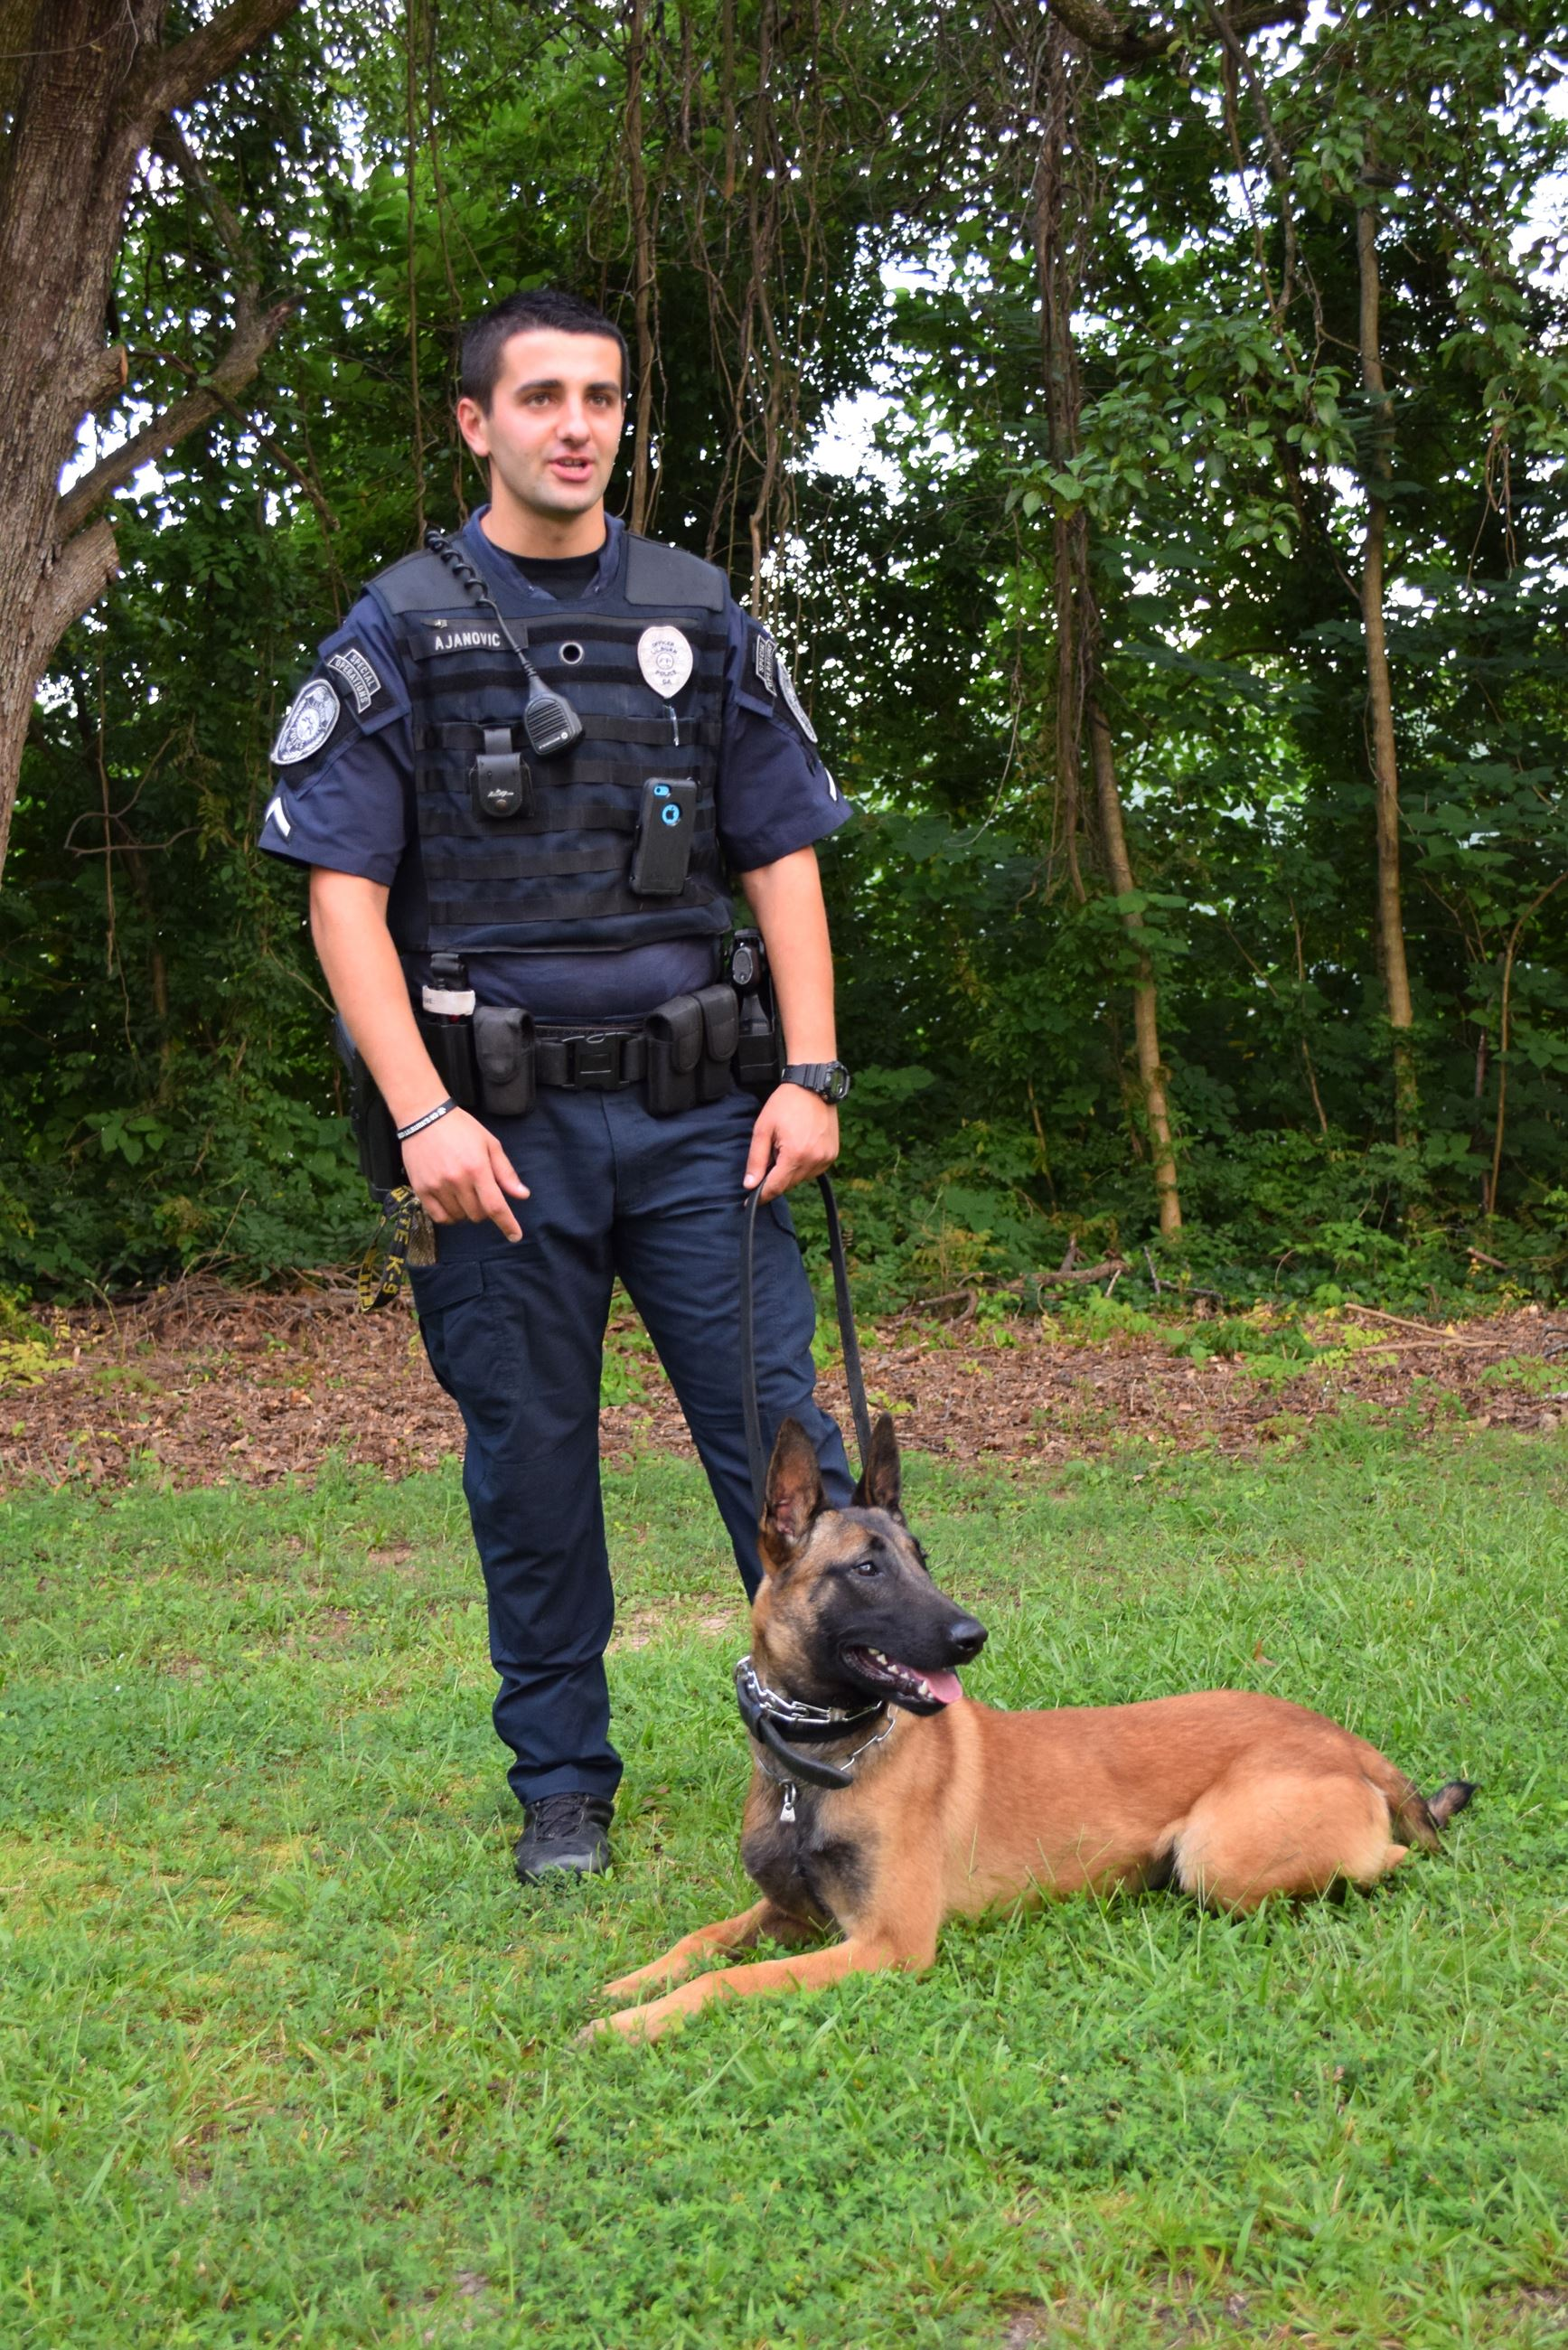 Officer Ajanovic standing with Ajax, the police dog